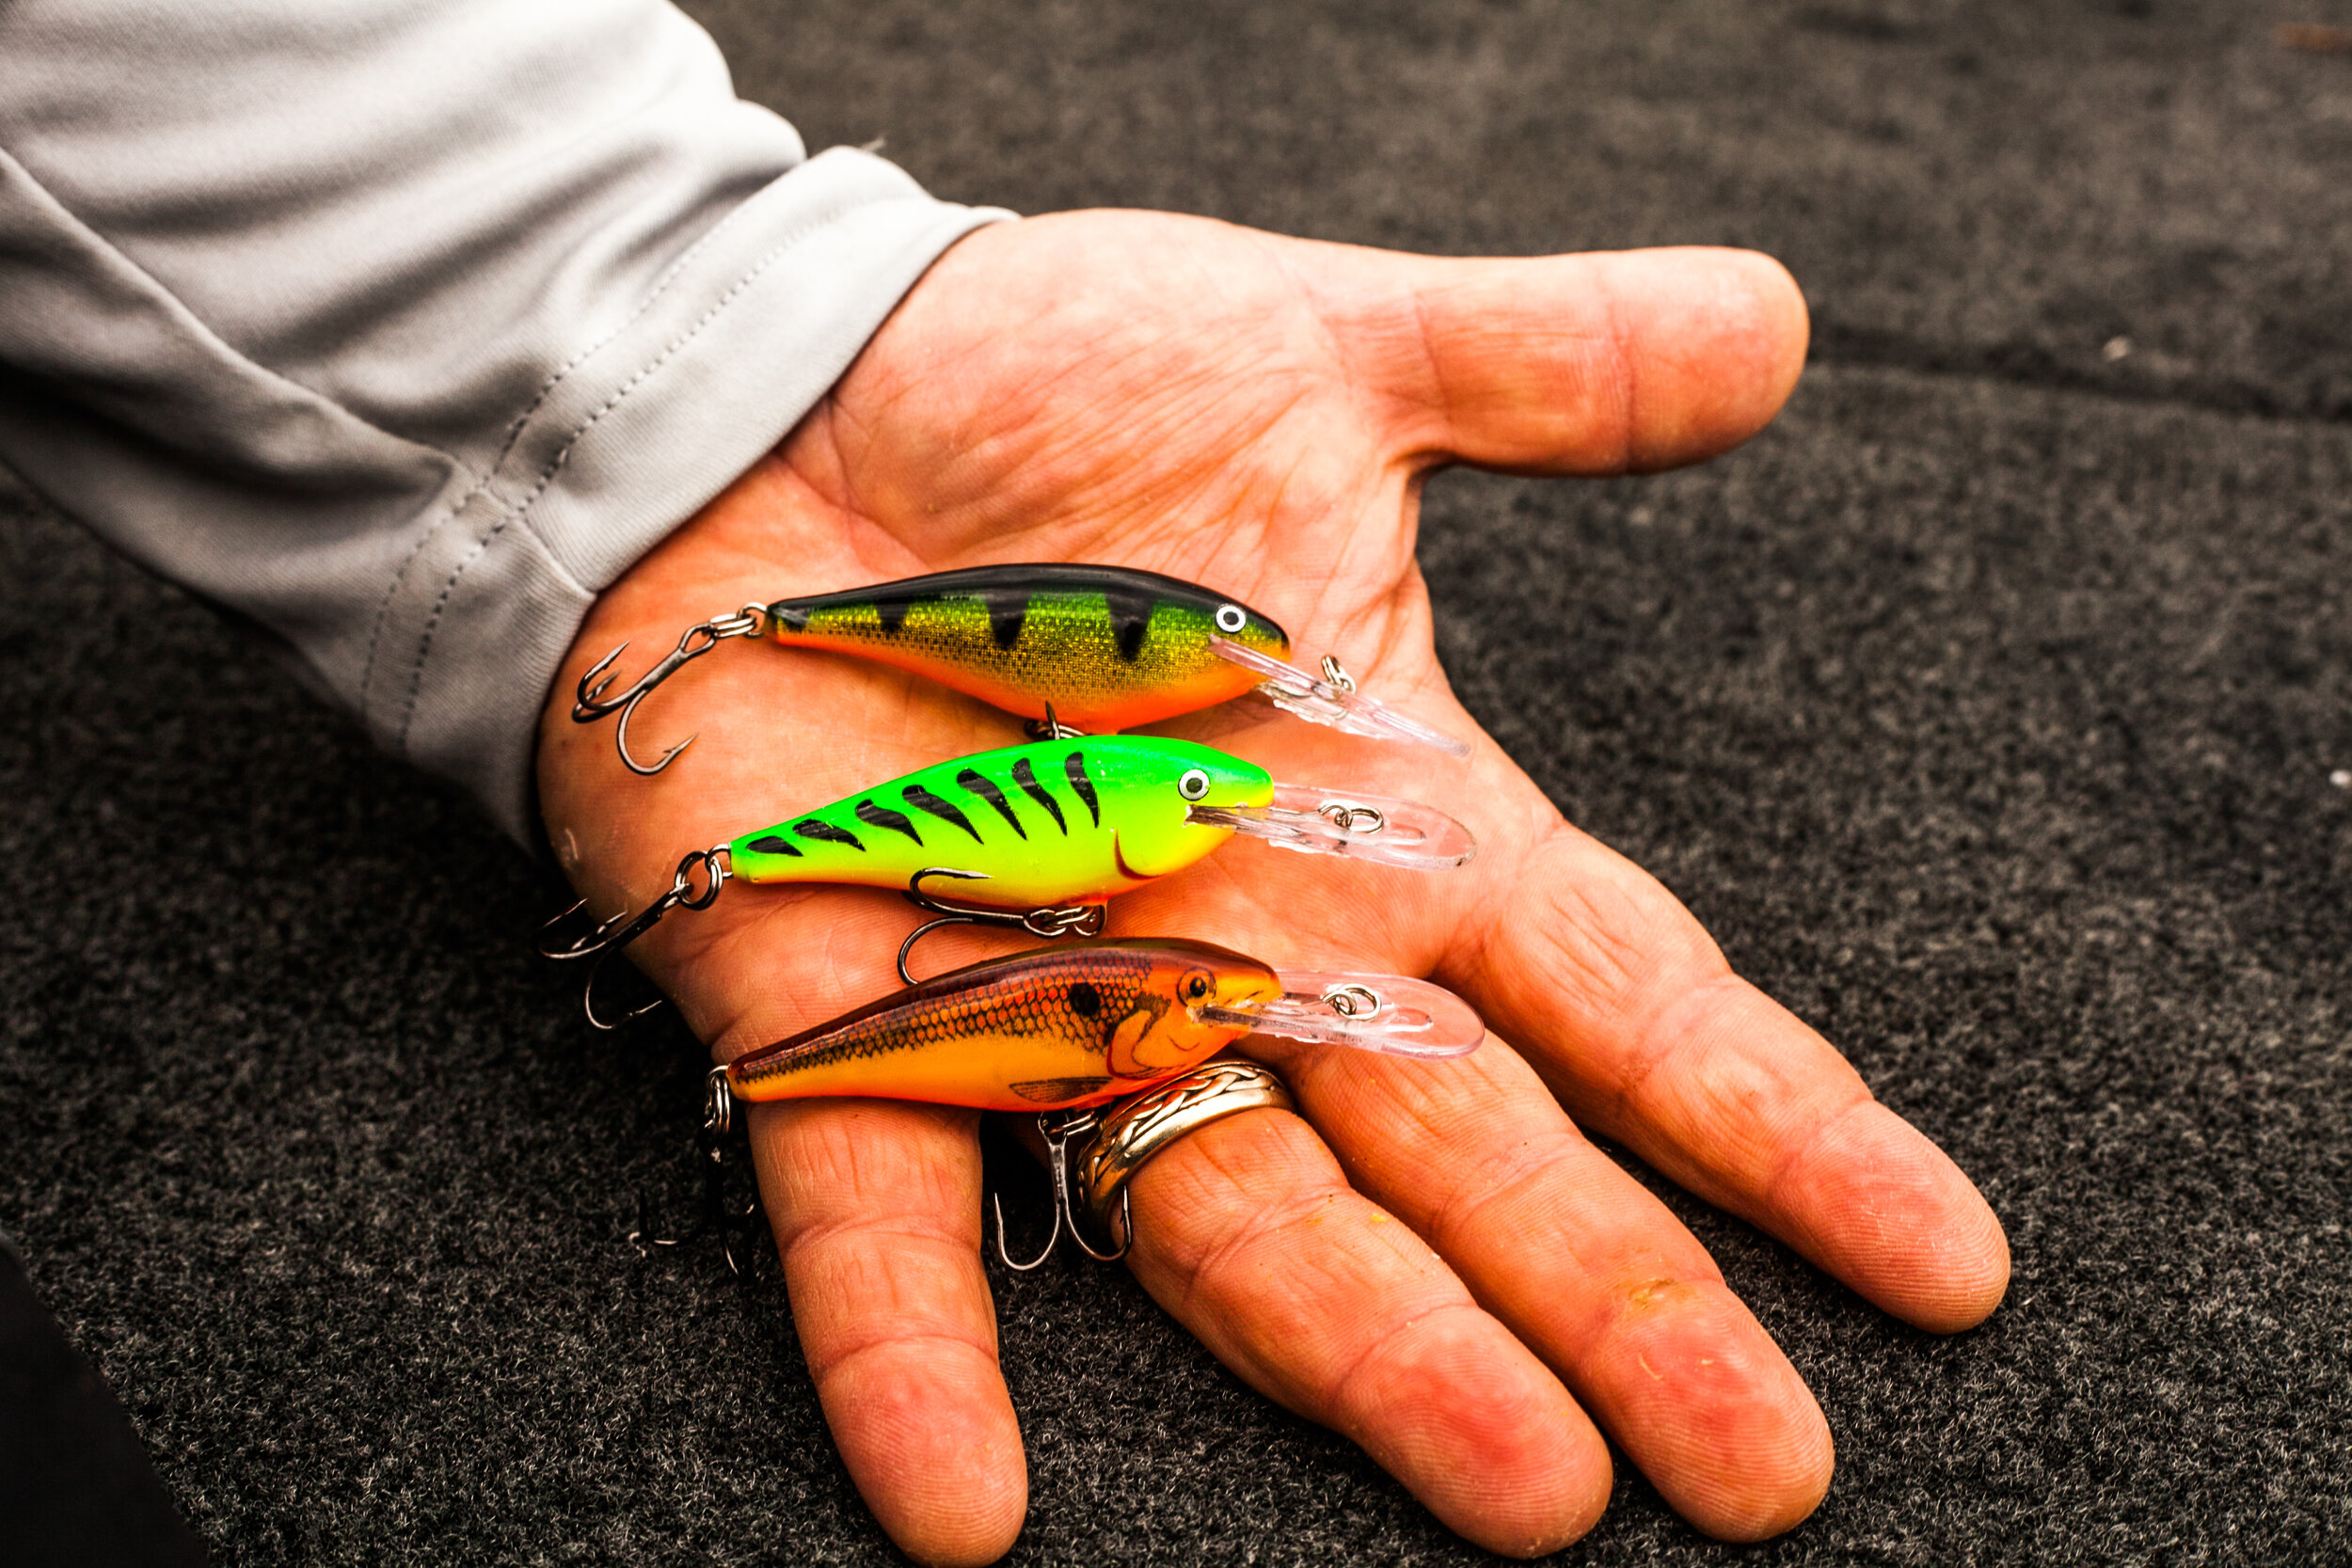 It's tough to beat a Shad Rap for multiple applications (trolling and casting) in both rivers and lakes.